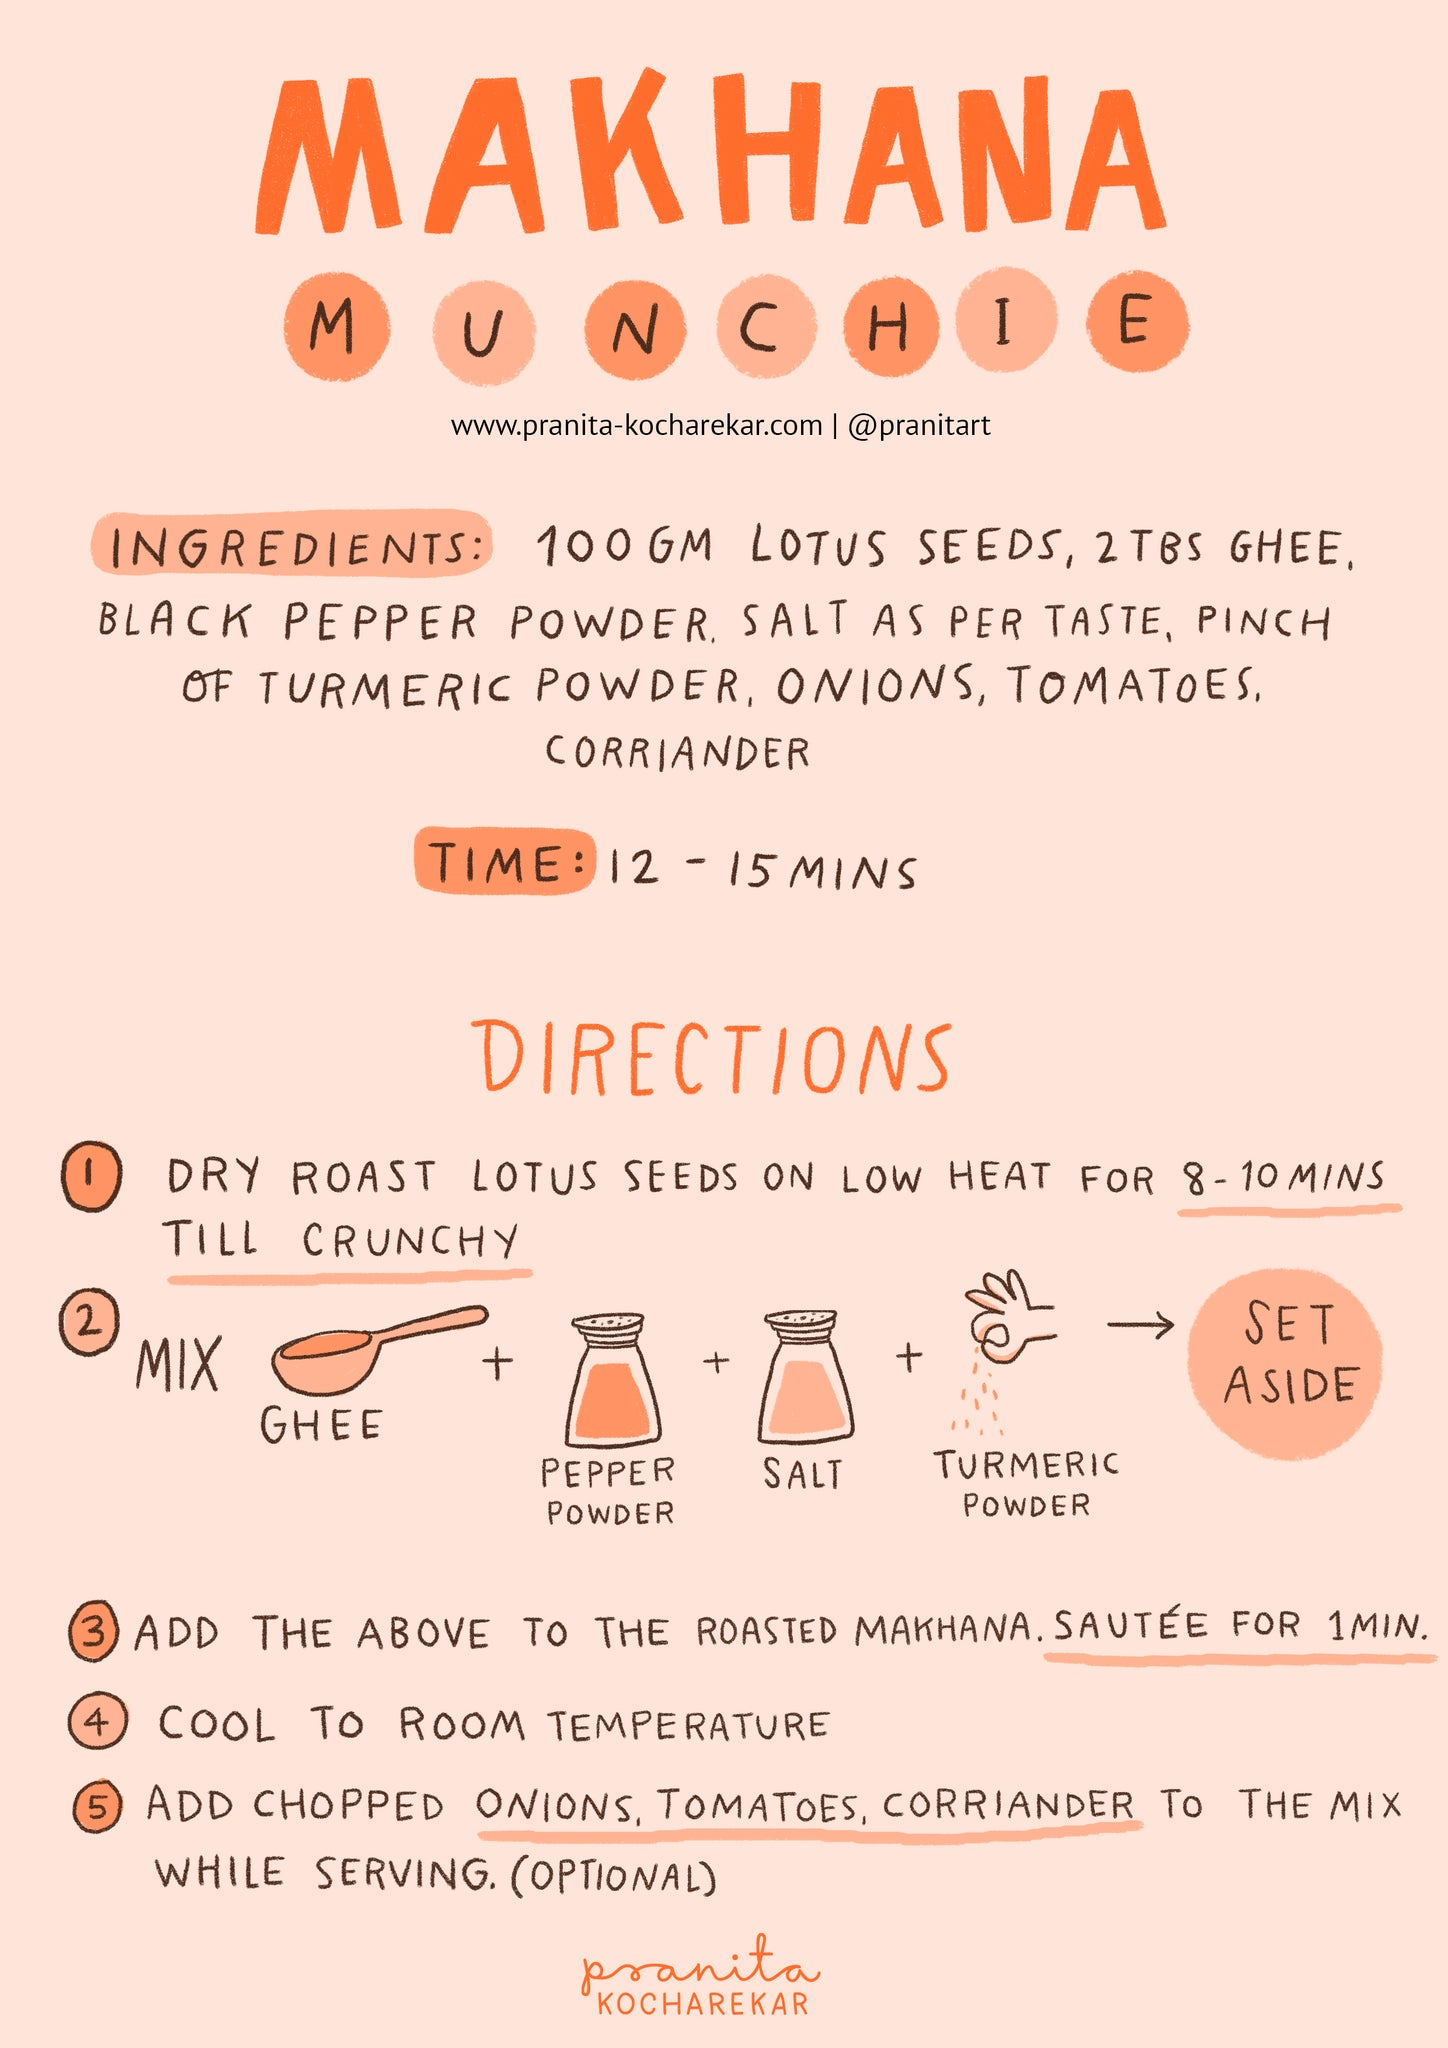 MAKHANA MUNCHIES RECIPE